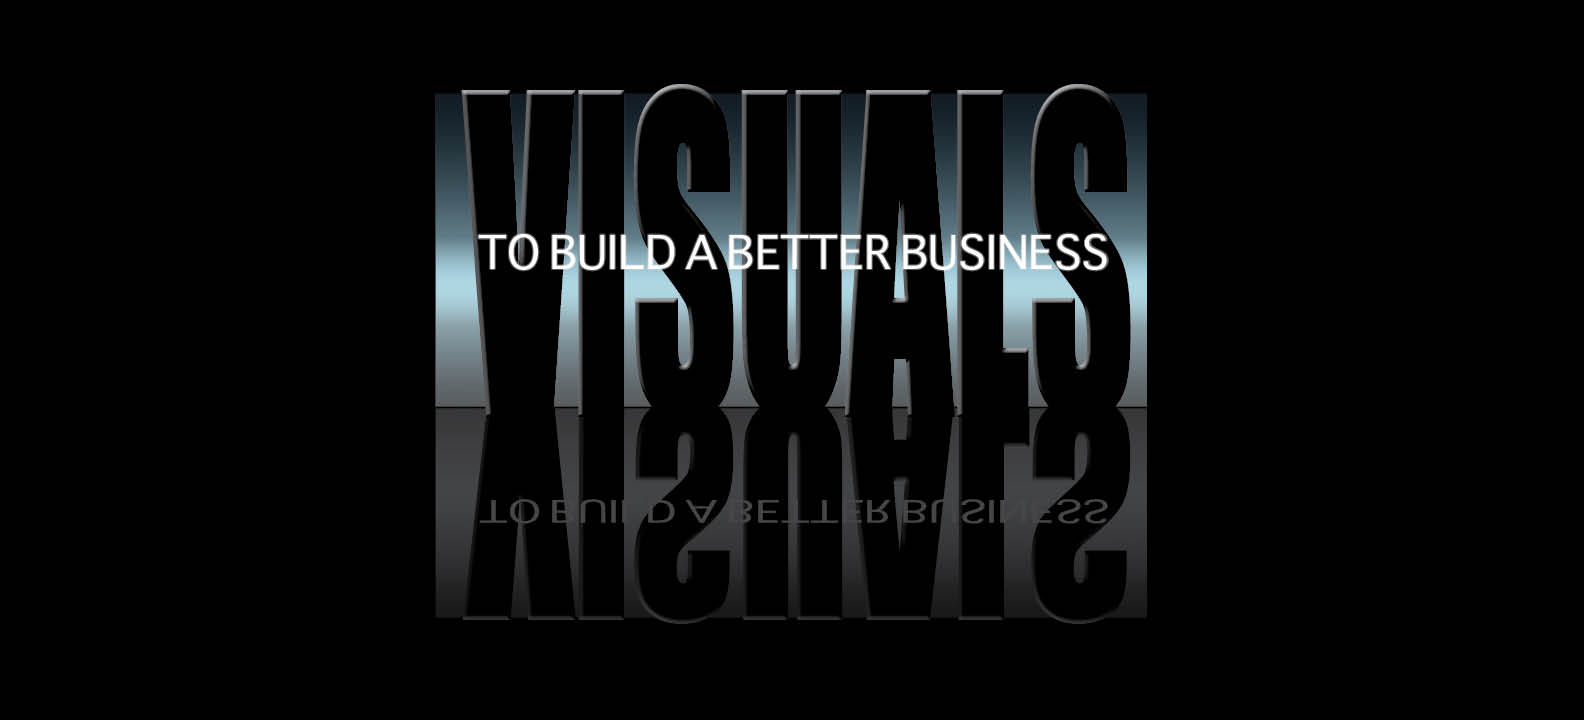 Visuals Build a Better Business